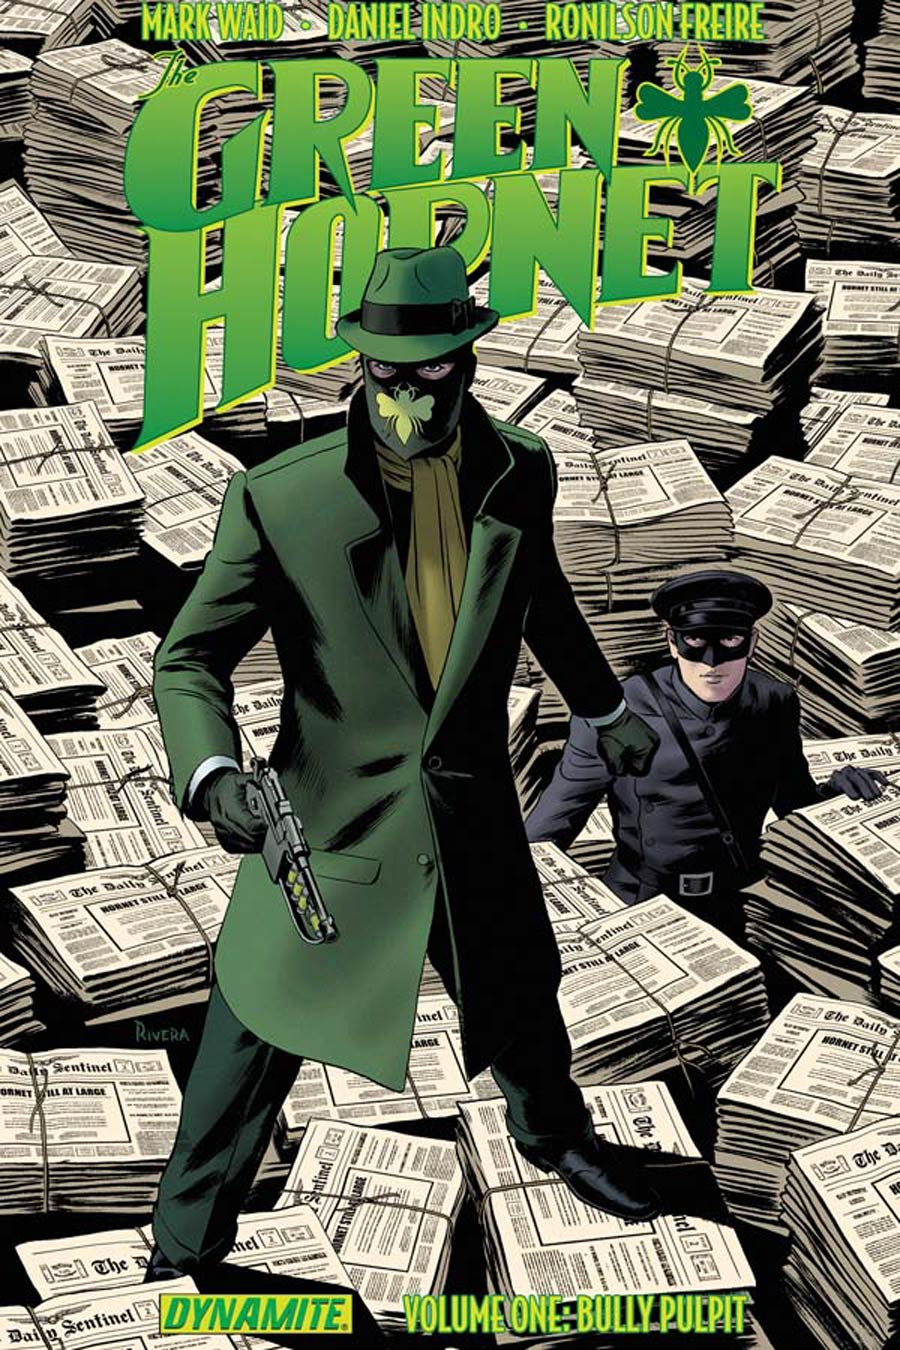 Mark Waids Green Hornet Vol 1 TP